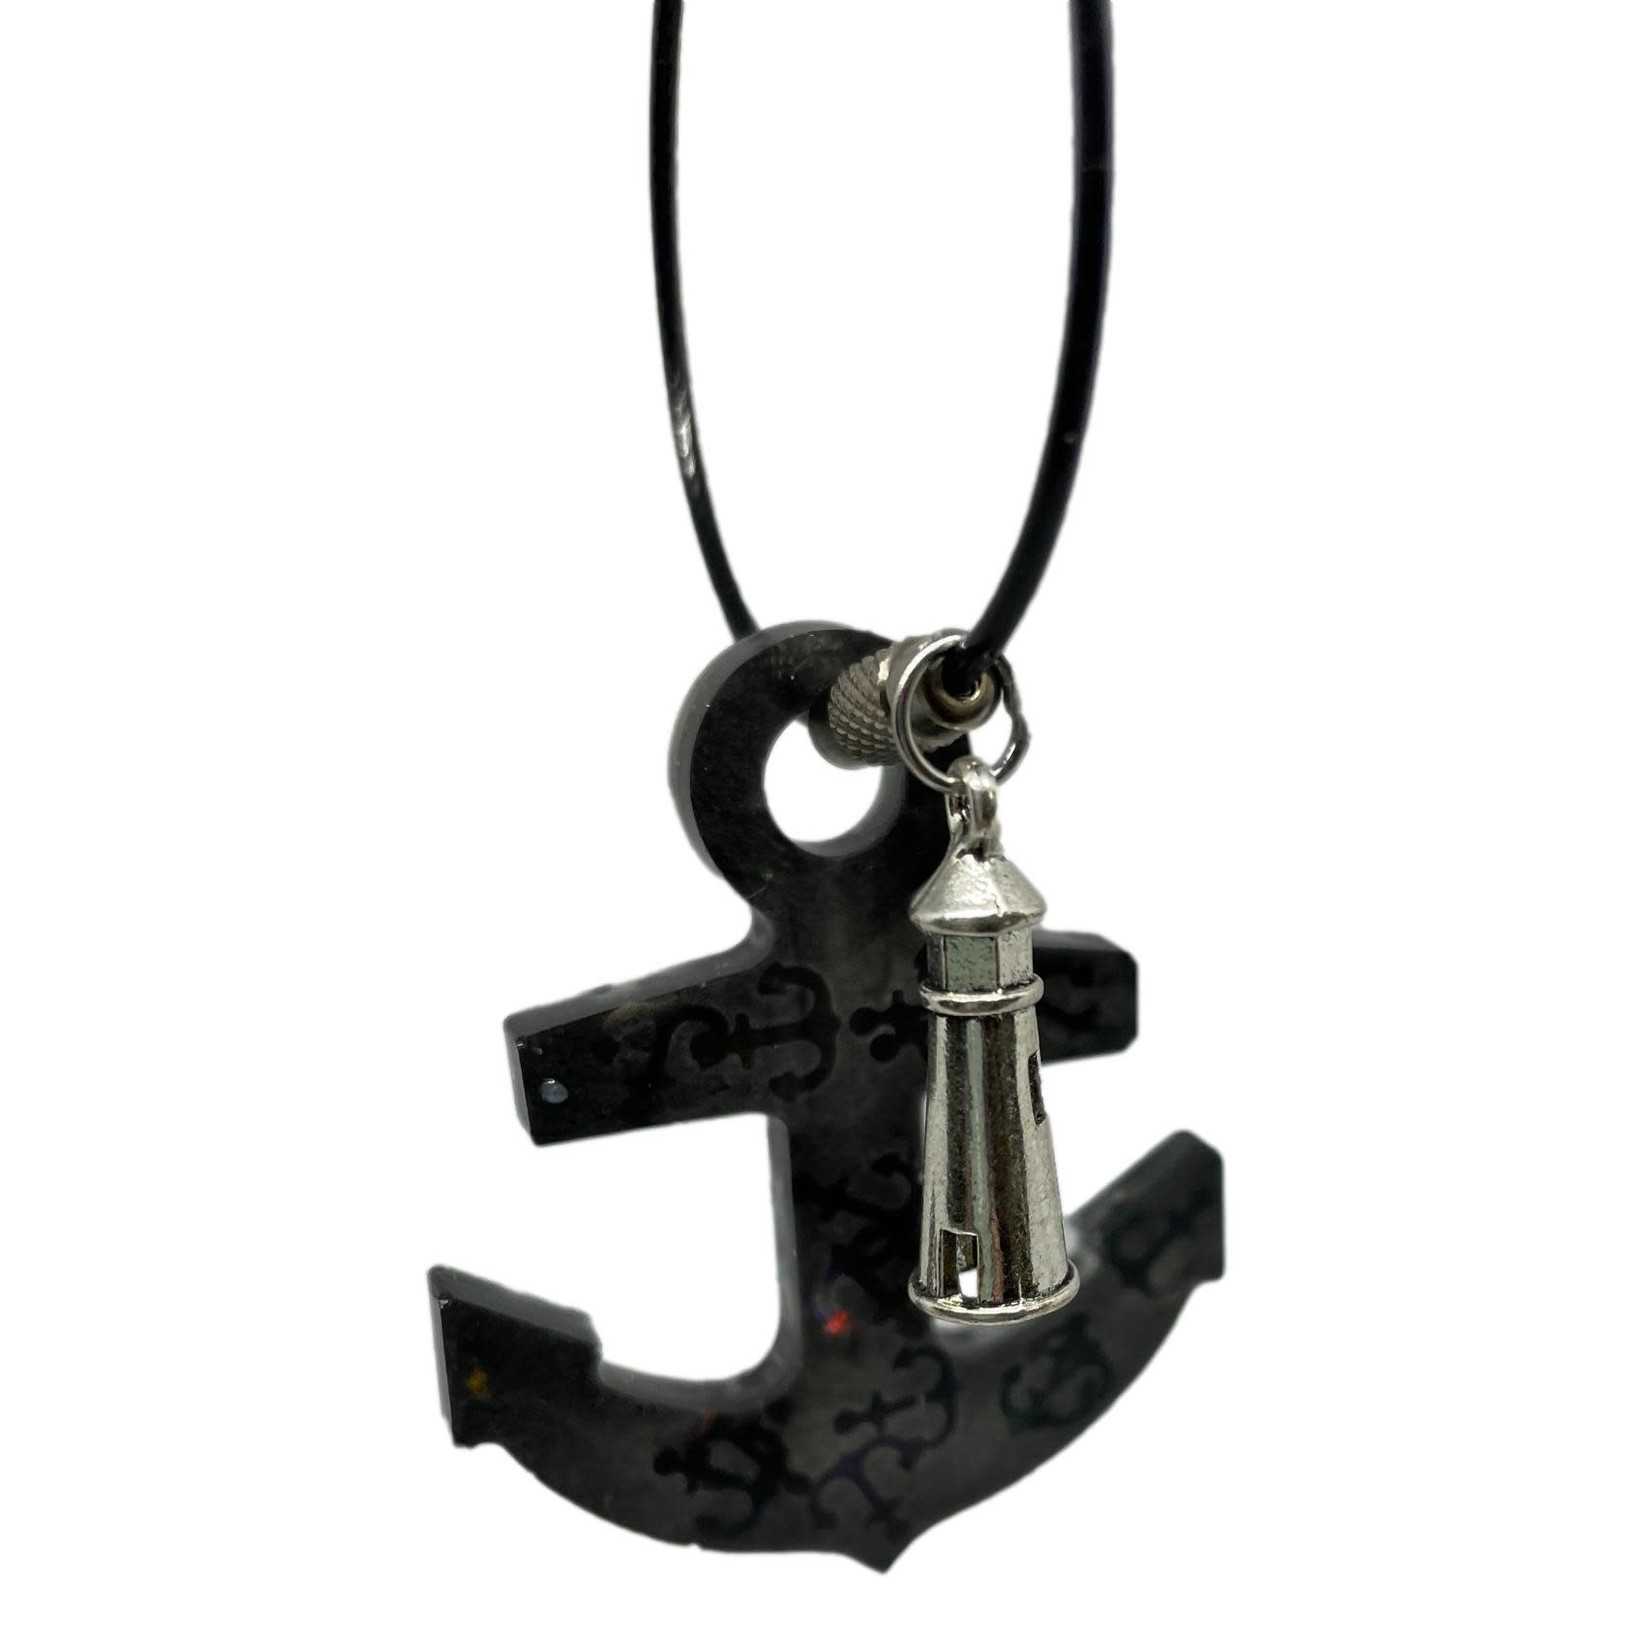 East Coast Sirens Black Anchor Key Chain w/Holographic Anchors